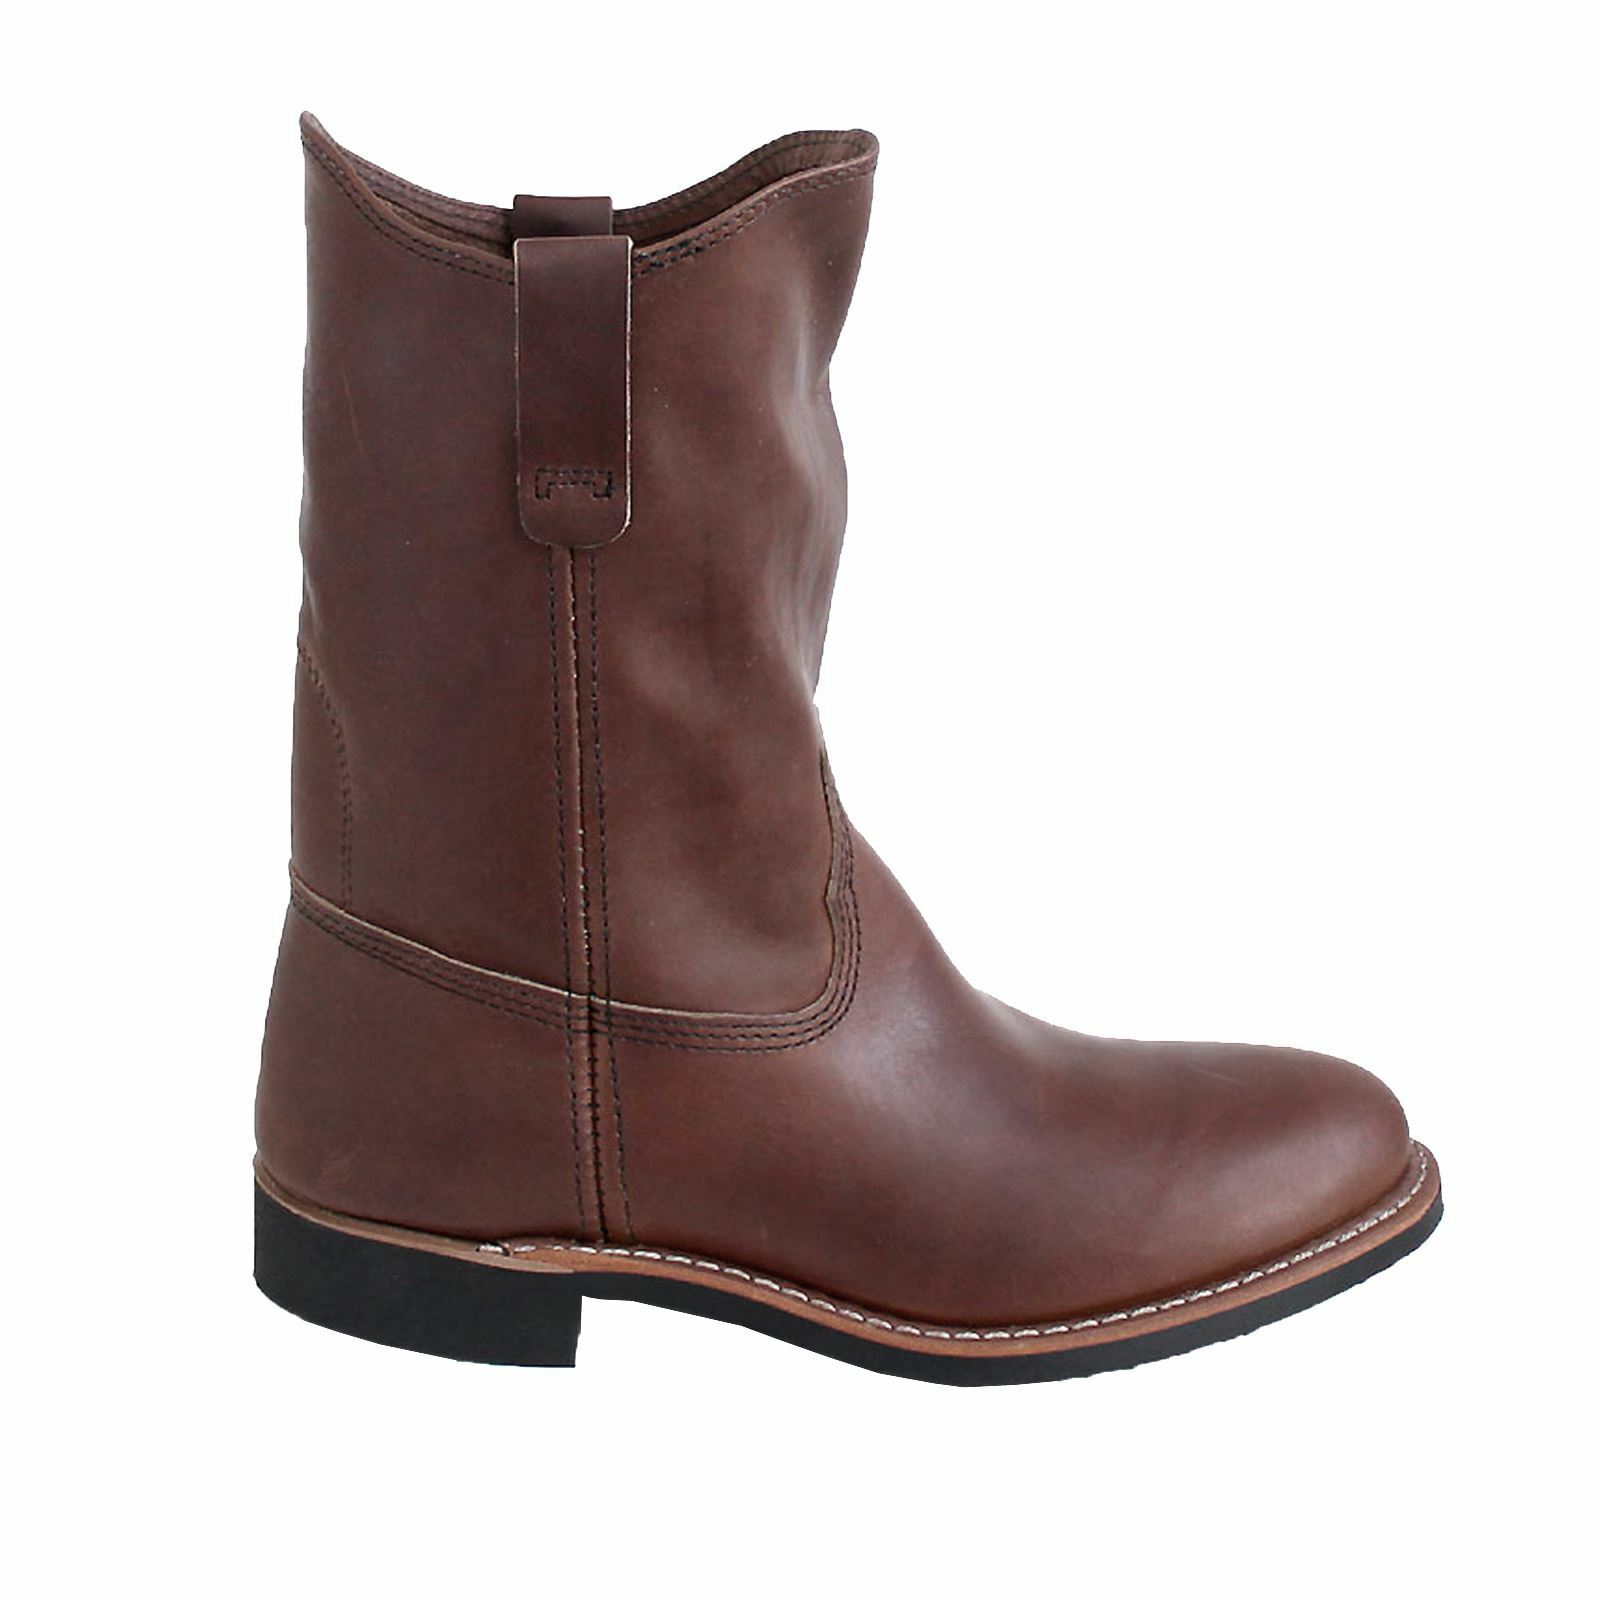 9a6b030eb68257 rot Wing Pecos 3468 Amber damen Leather Pull-on Biker Stiefel Stiefel  Stiefel bf3028